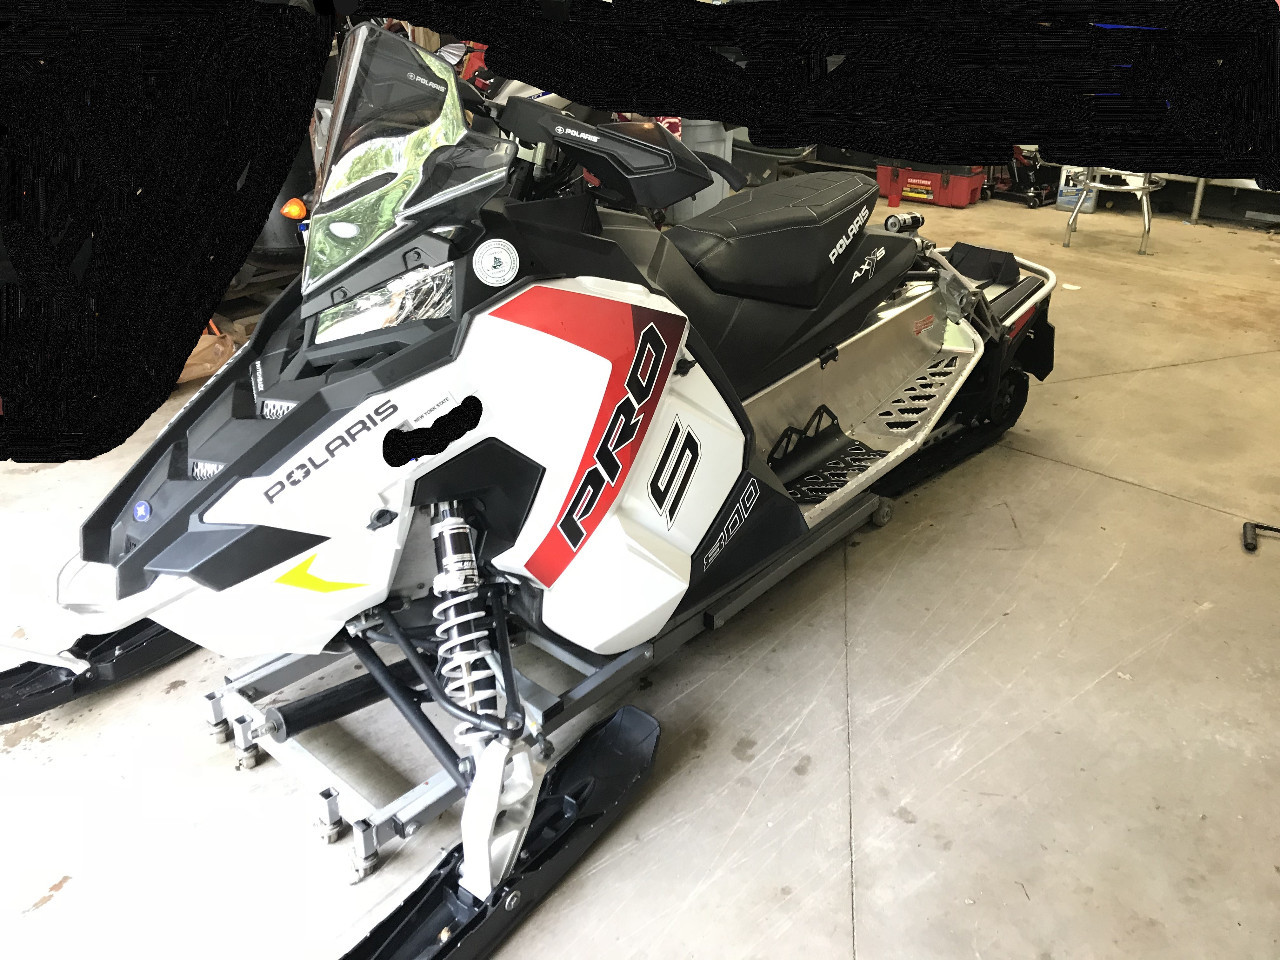 2273 Used S Mini Snowmobiles For Sale Snowmobile Trader Yamaha Sxr 700 Wiring Harness